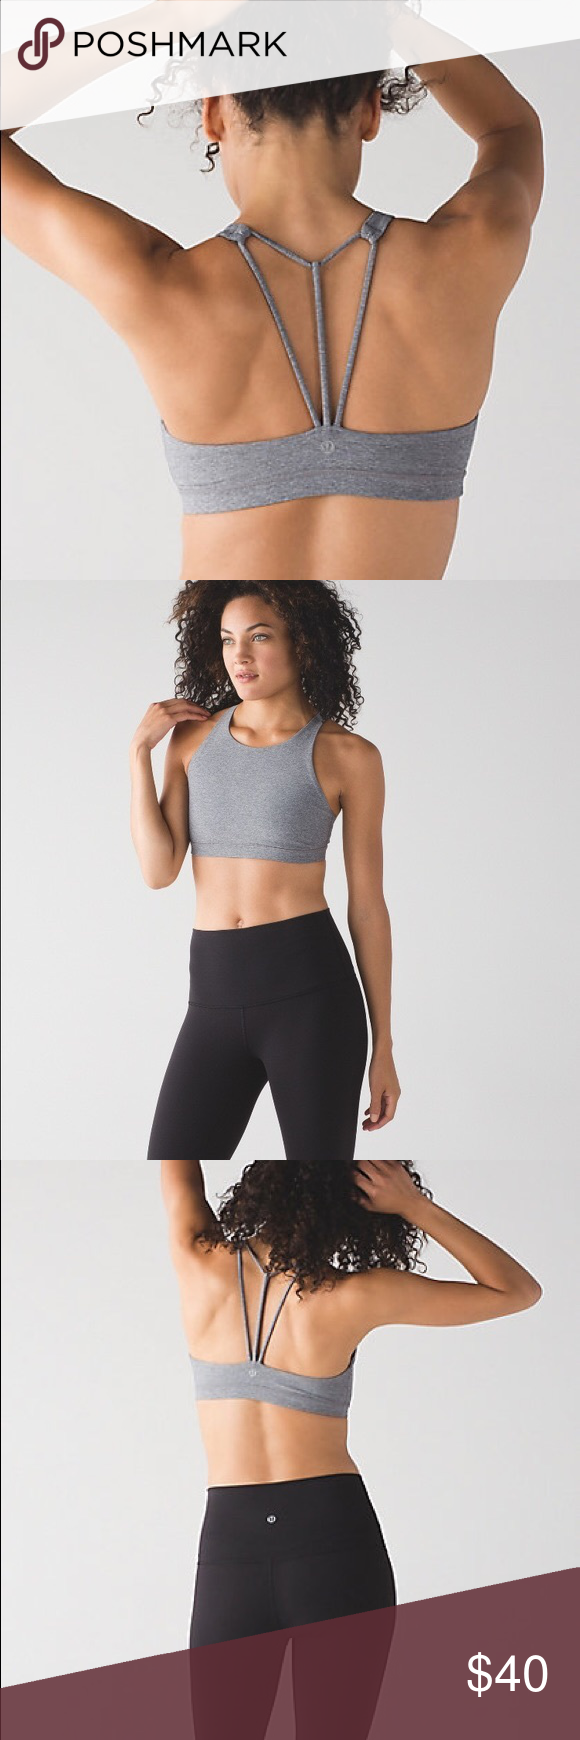 7acfe1b7ff Lululemon Trinity Bra II - Heathered Slate Brand new with  detached tags !  Never ended up wearing this. Will include original tag.